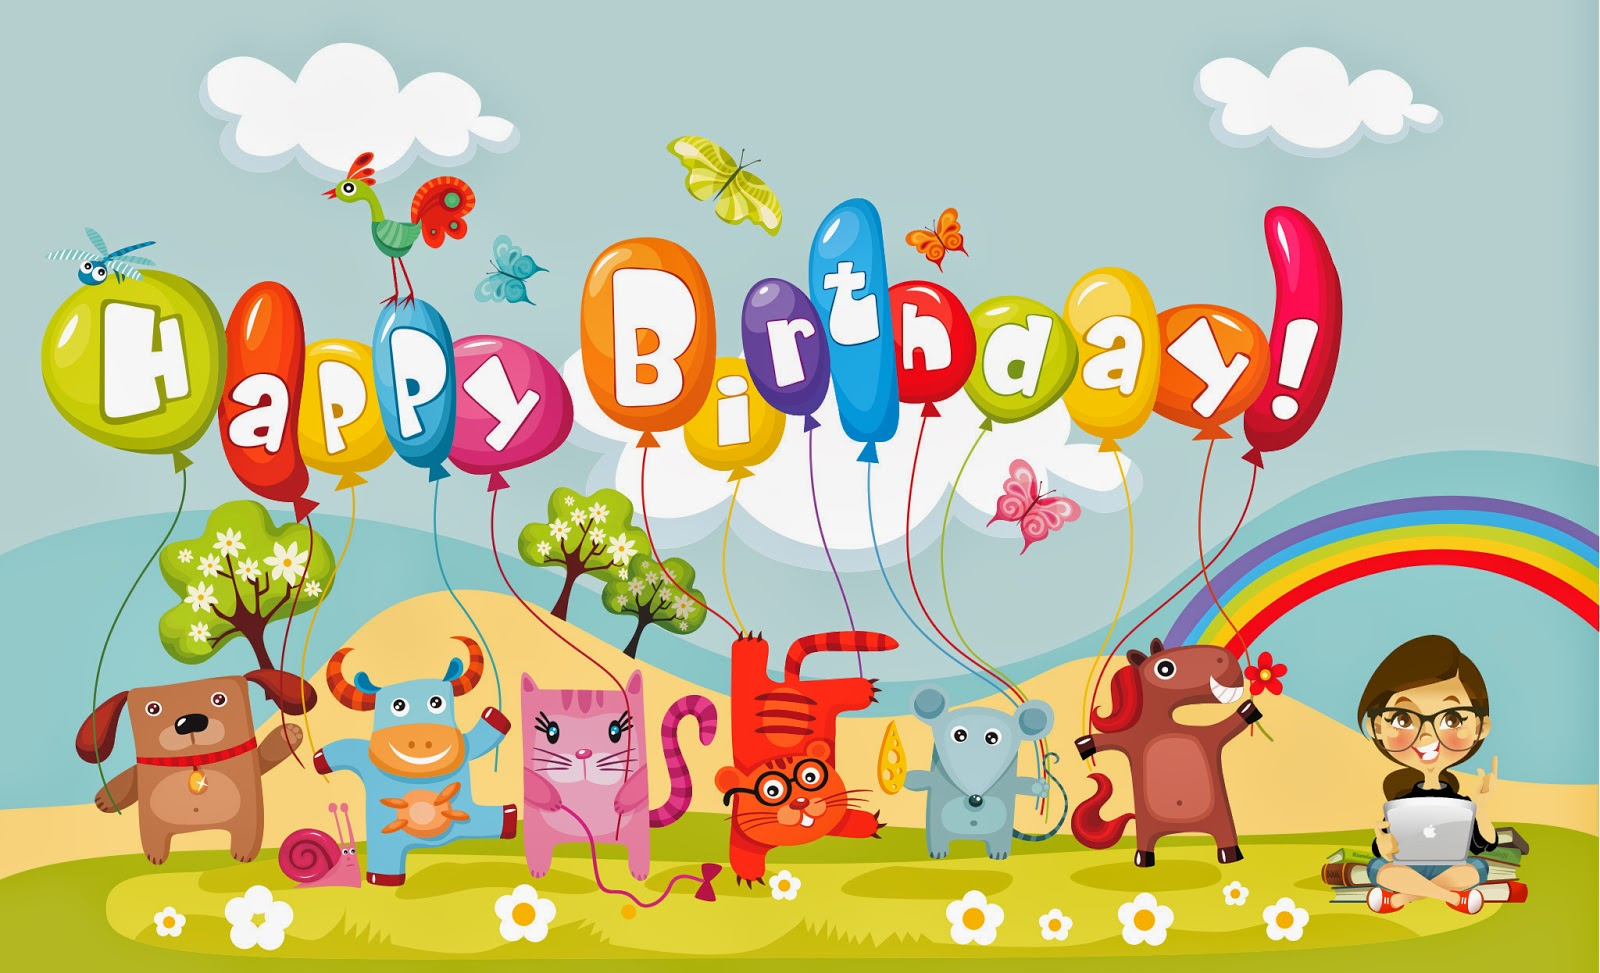 Happy events happy birthday wishes images free download - Birthday cards images free download ...